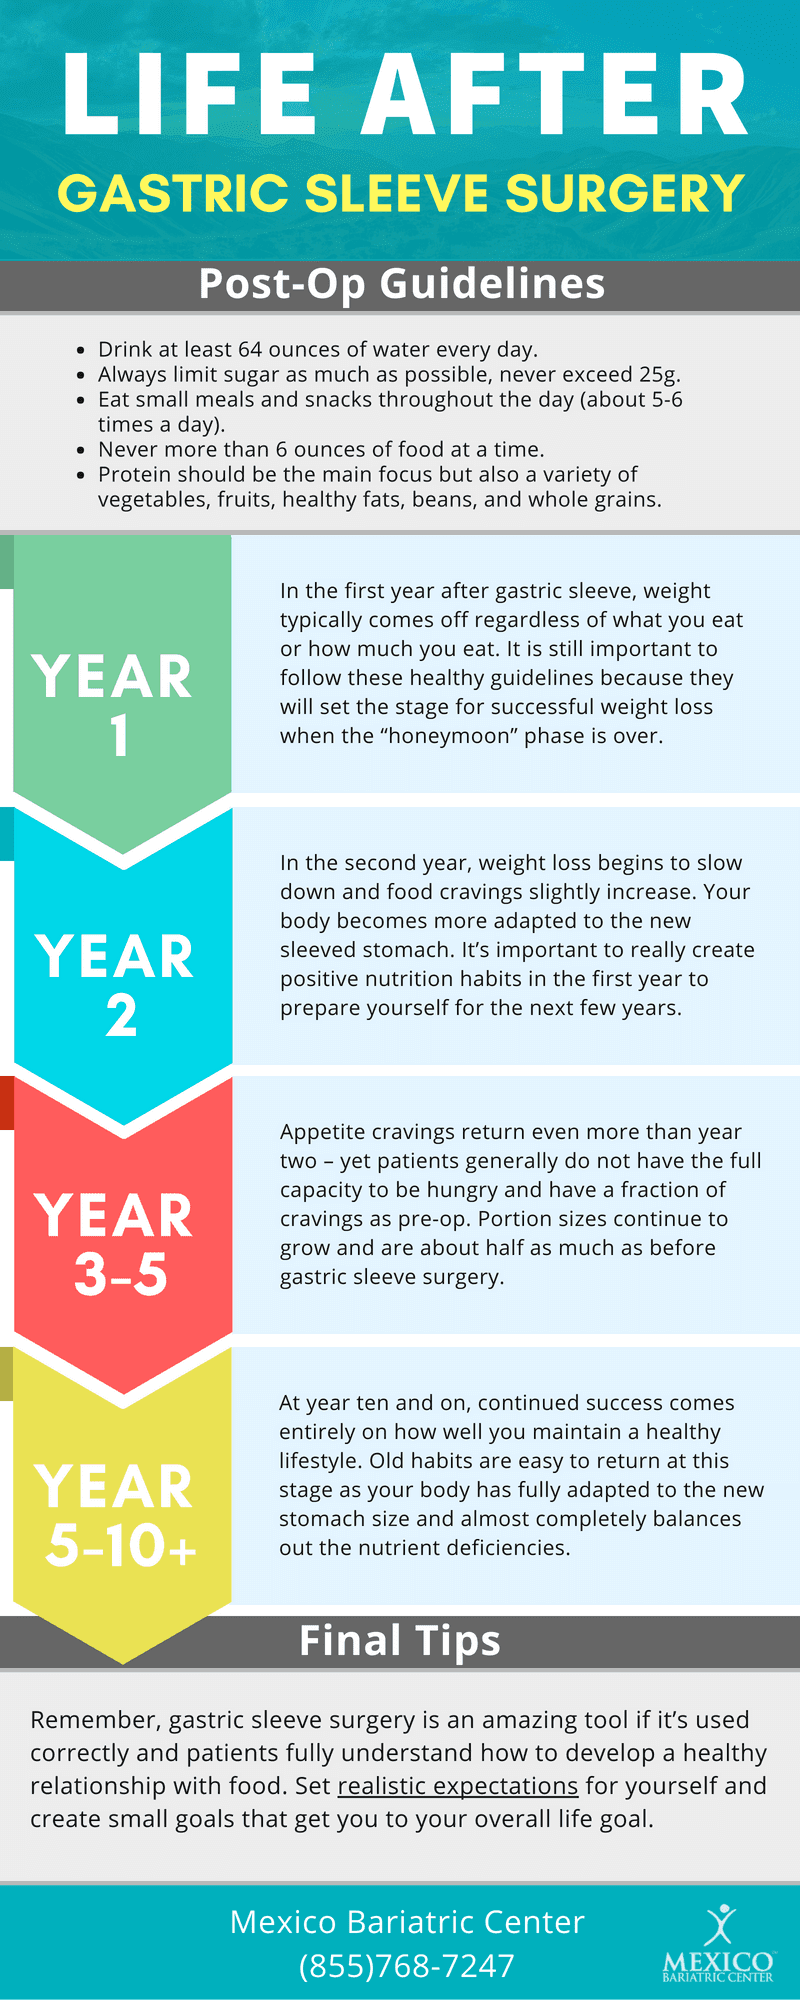 Life After Gastric Sleeve Surgery - Vertical Sleeve Gastrectomy VSG - Infographic Final